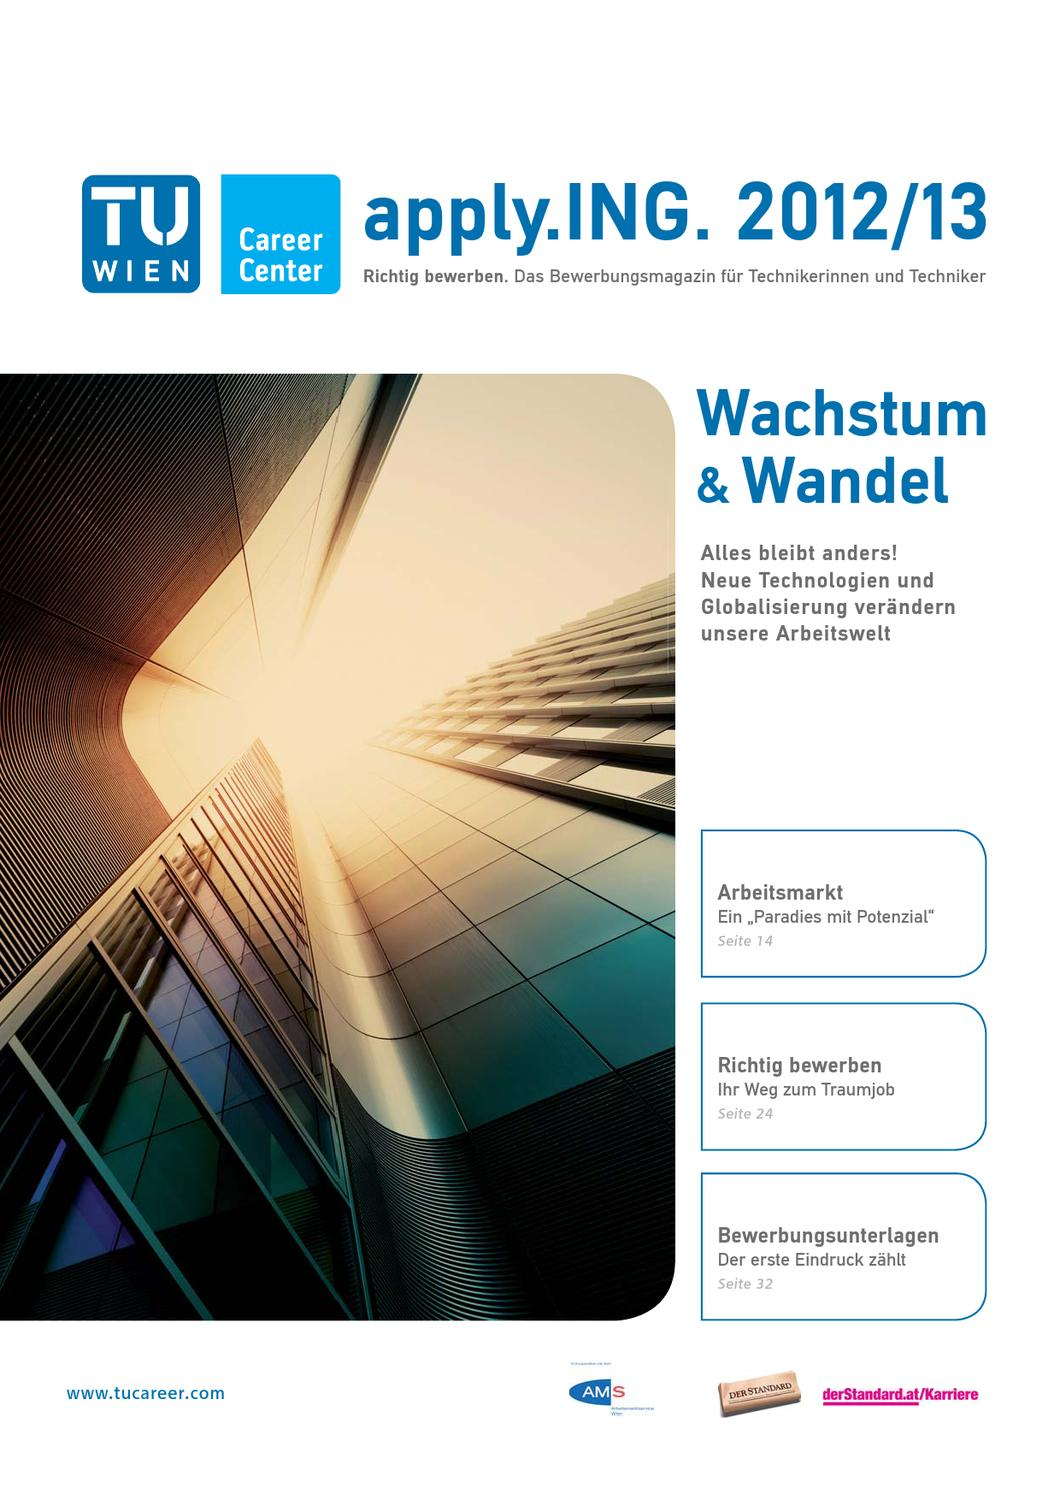 apply.ING. - Das Bewerbungsmagazin 2012/13 by TU Career Center GmbH - issuu